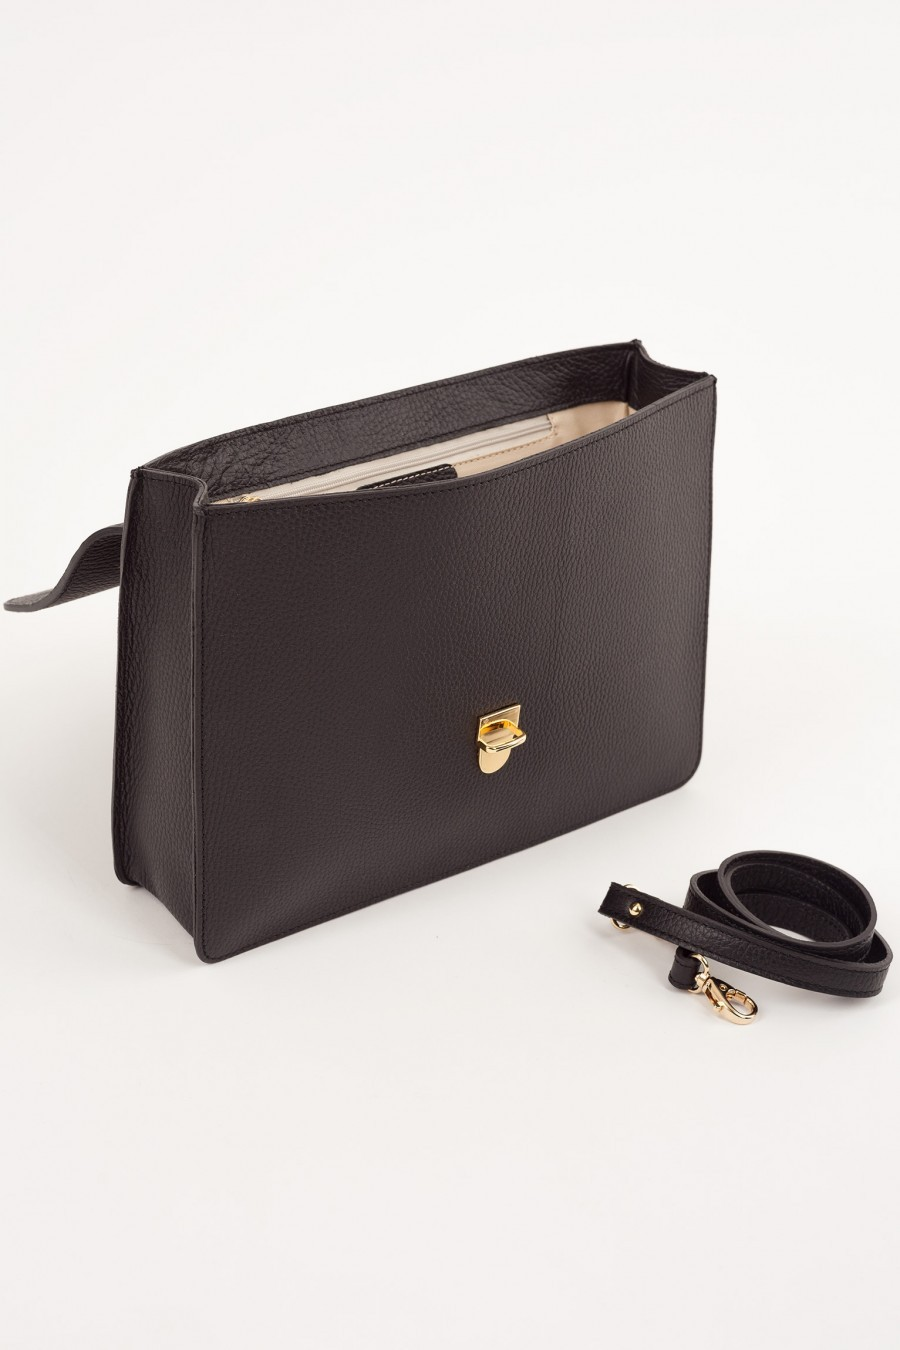 briefcase with shoulder